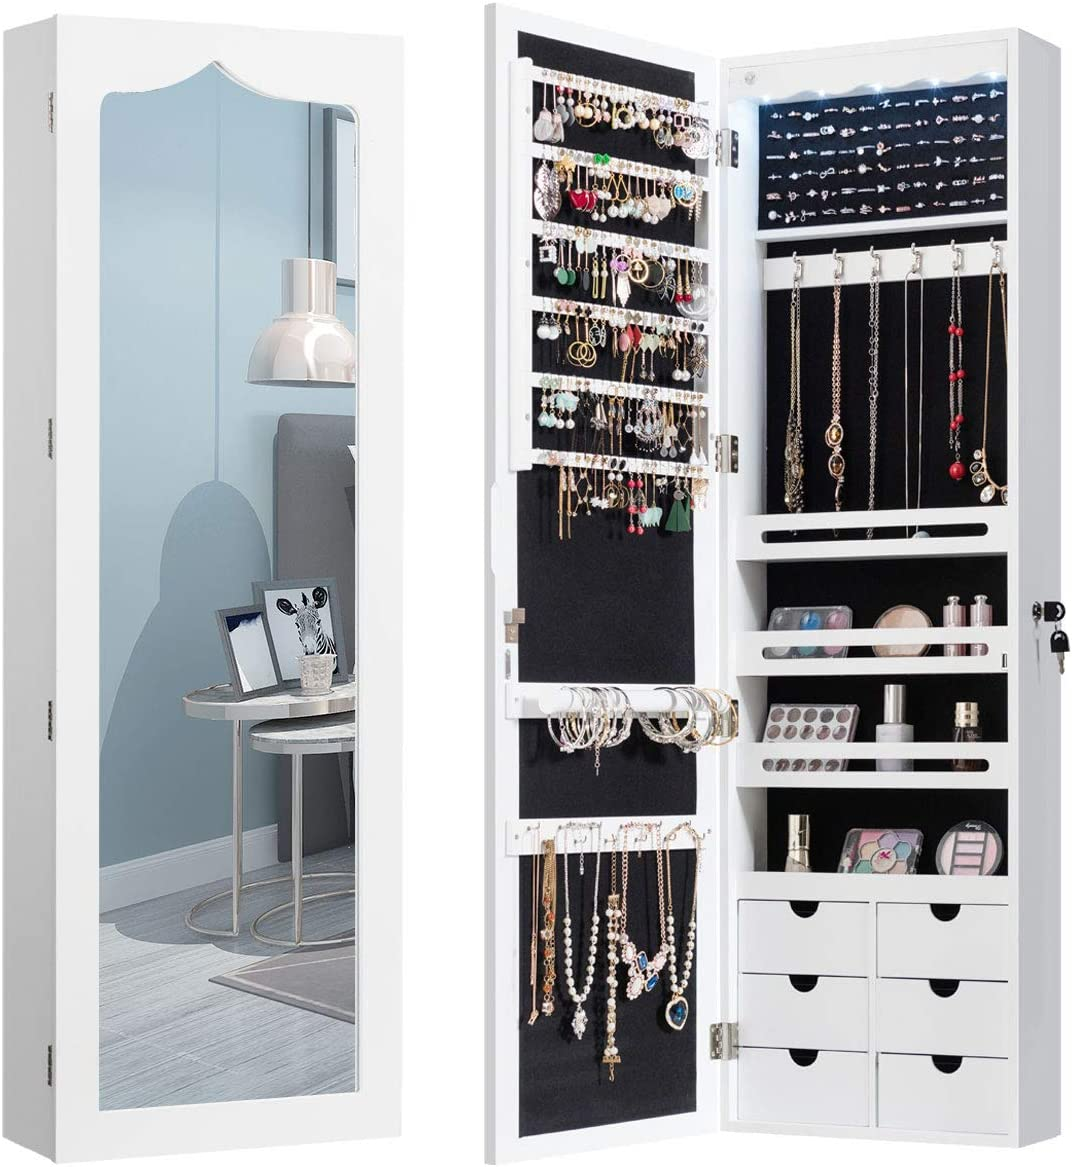 Buy CHARMAID 20 LEDs Mirror Jewelry Armoire Wall Door Mounted ...